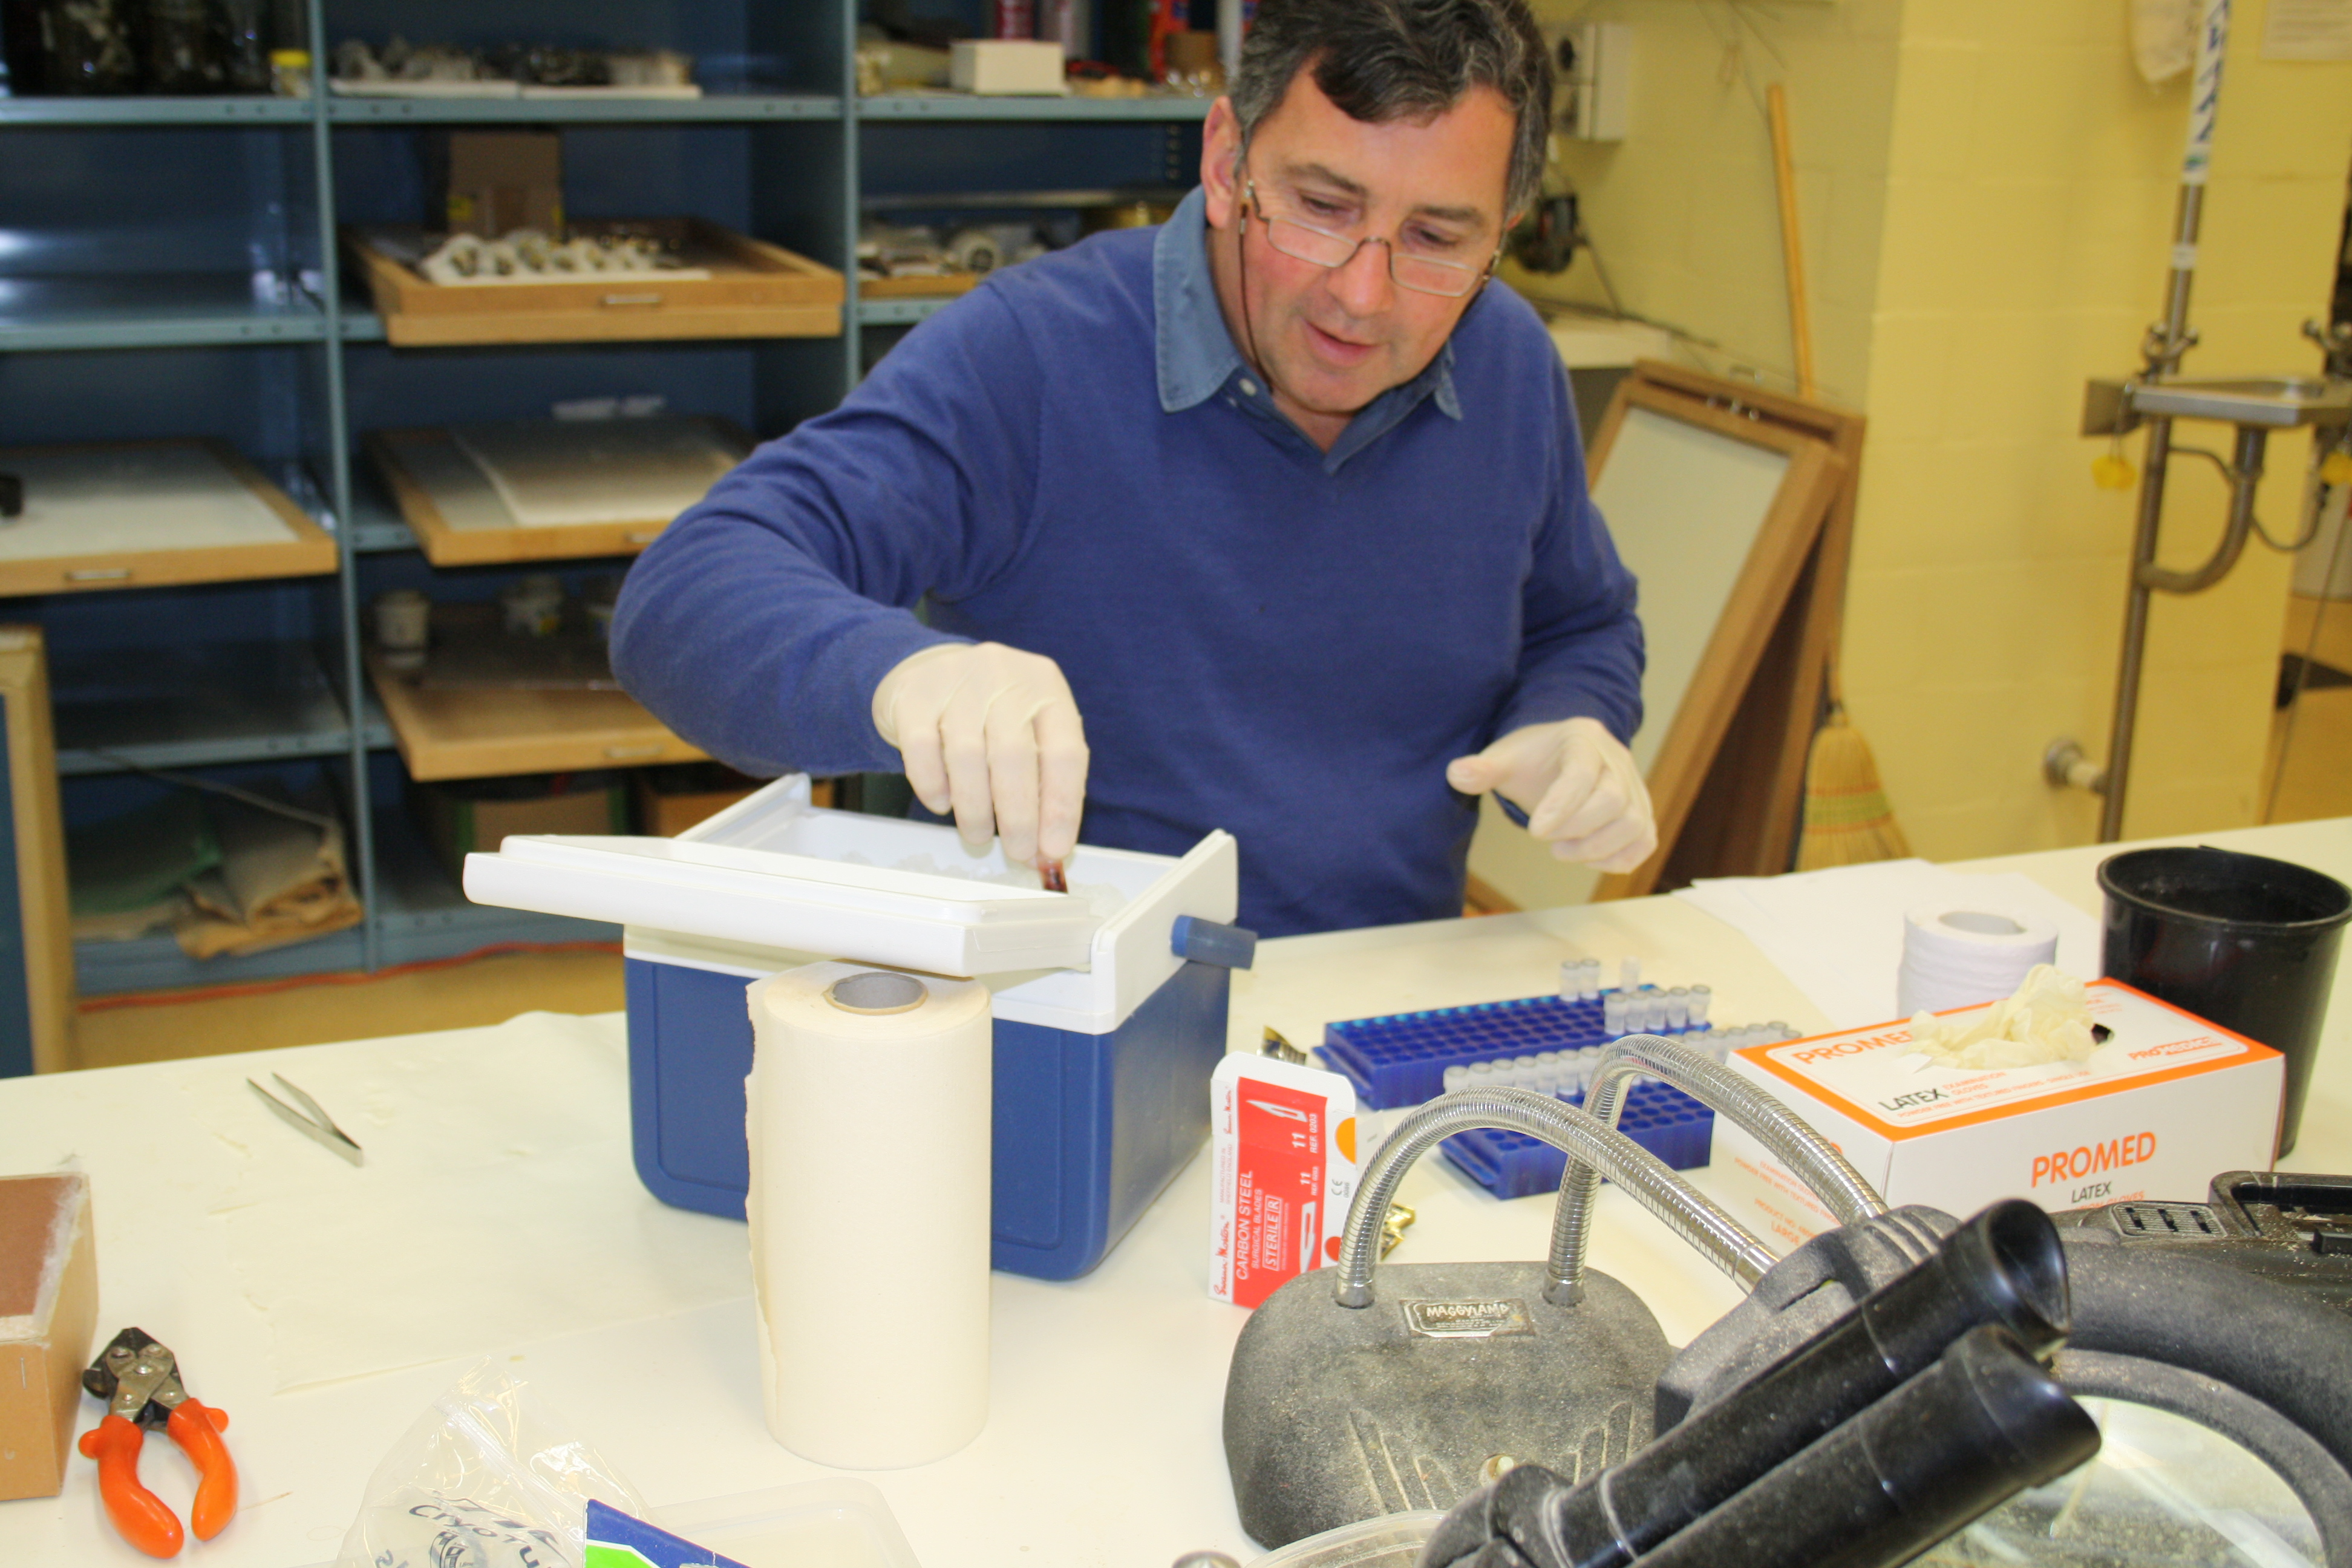 Scientist preparing cryo-frozen tissue samples for DNA analysis.